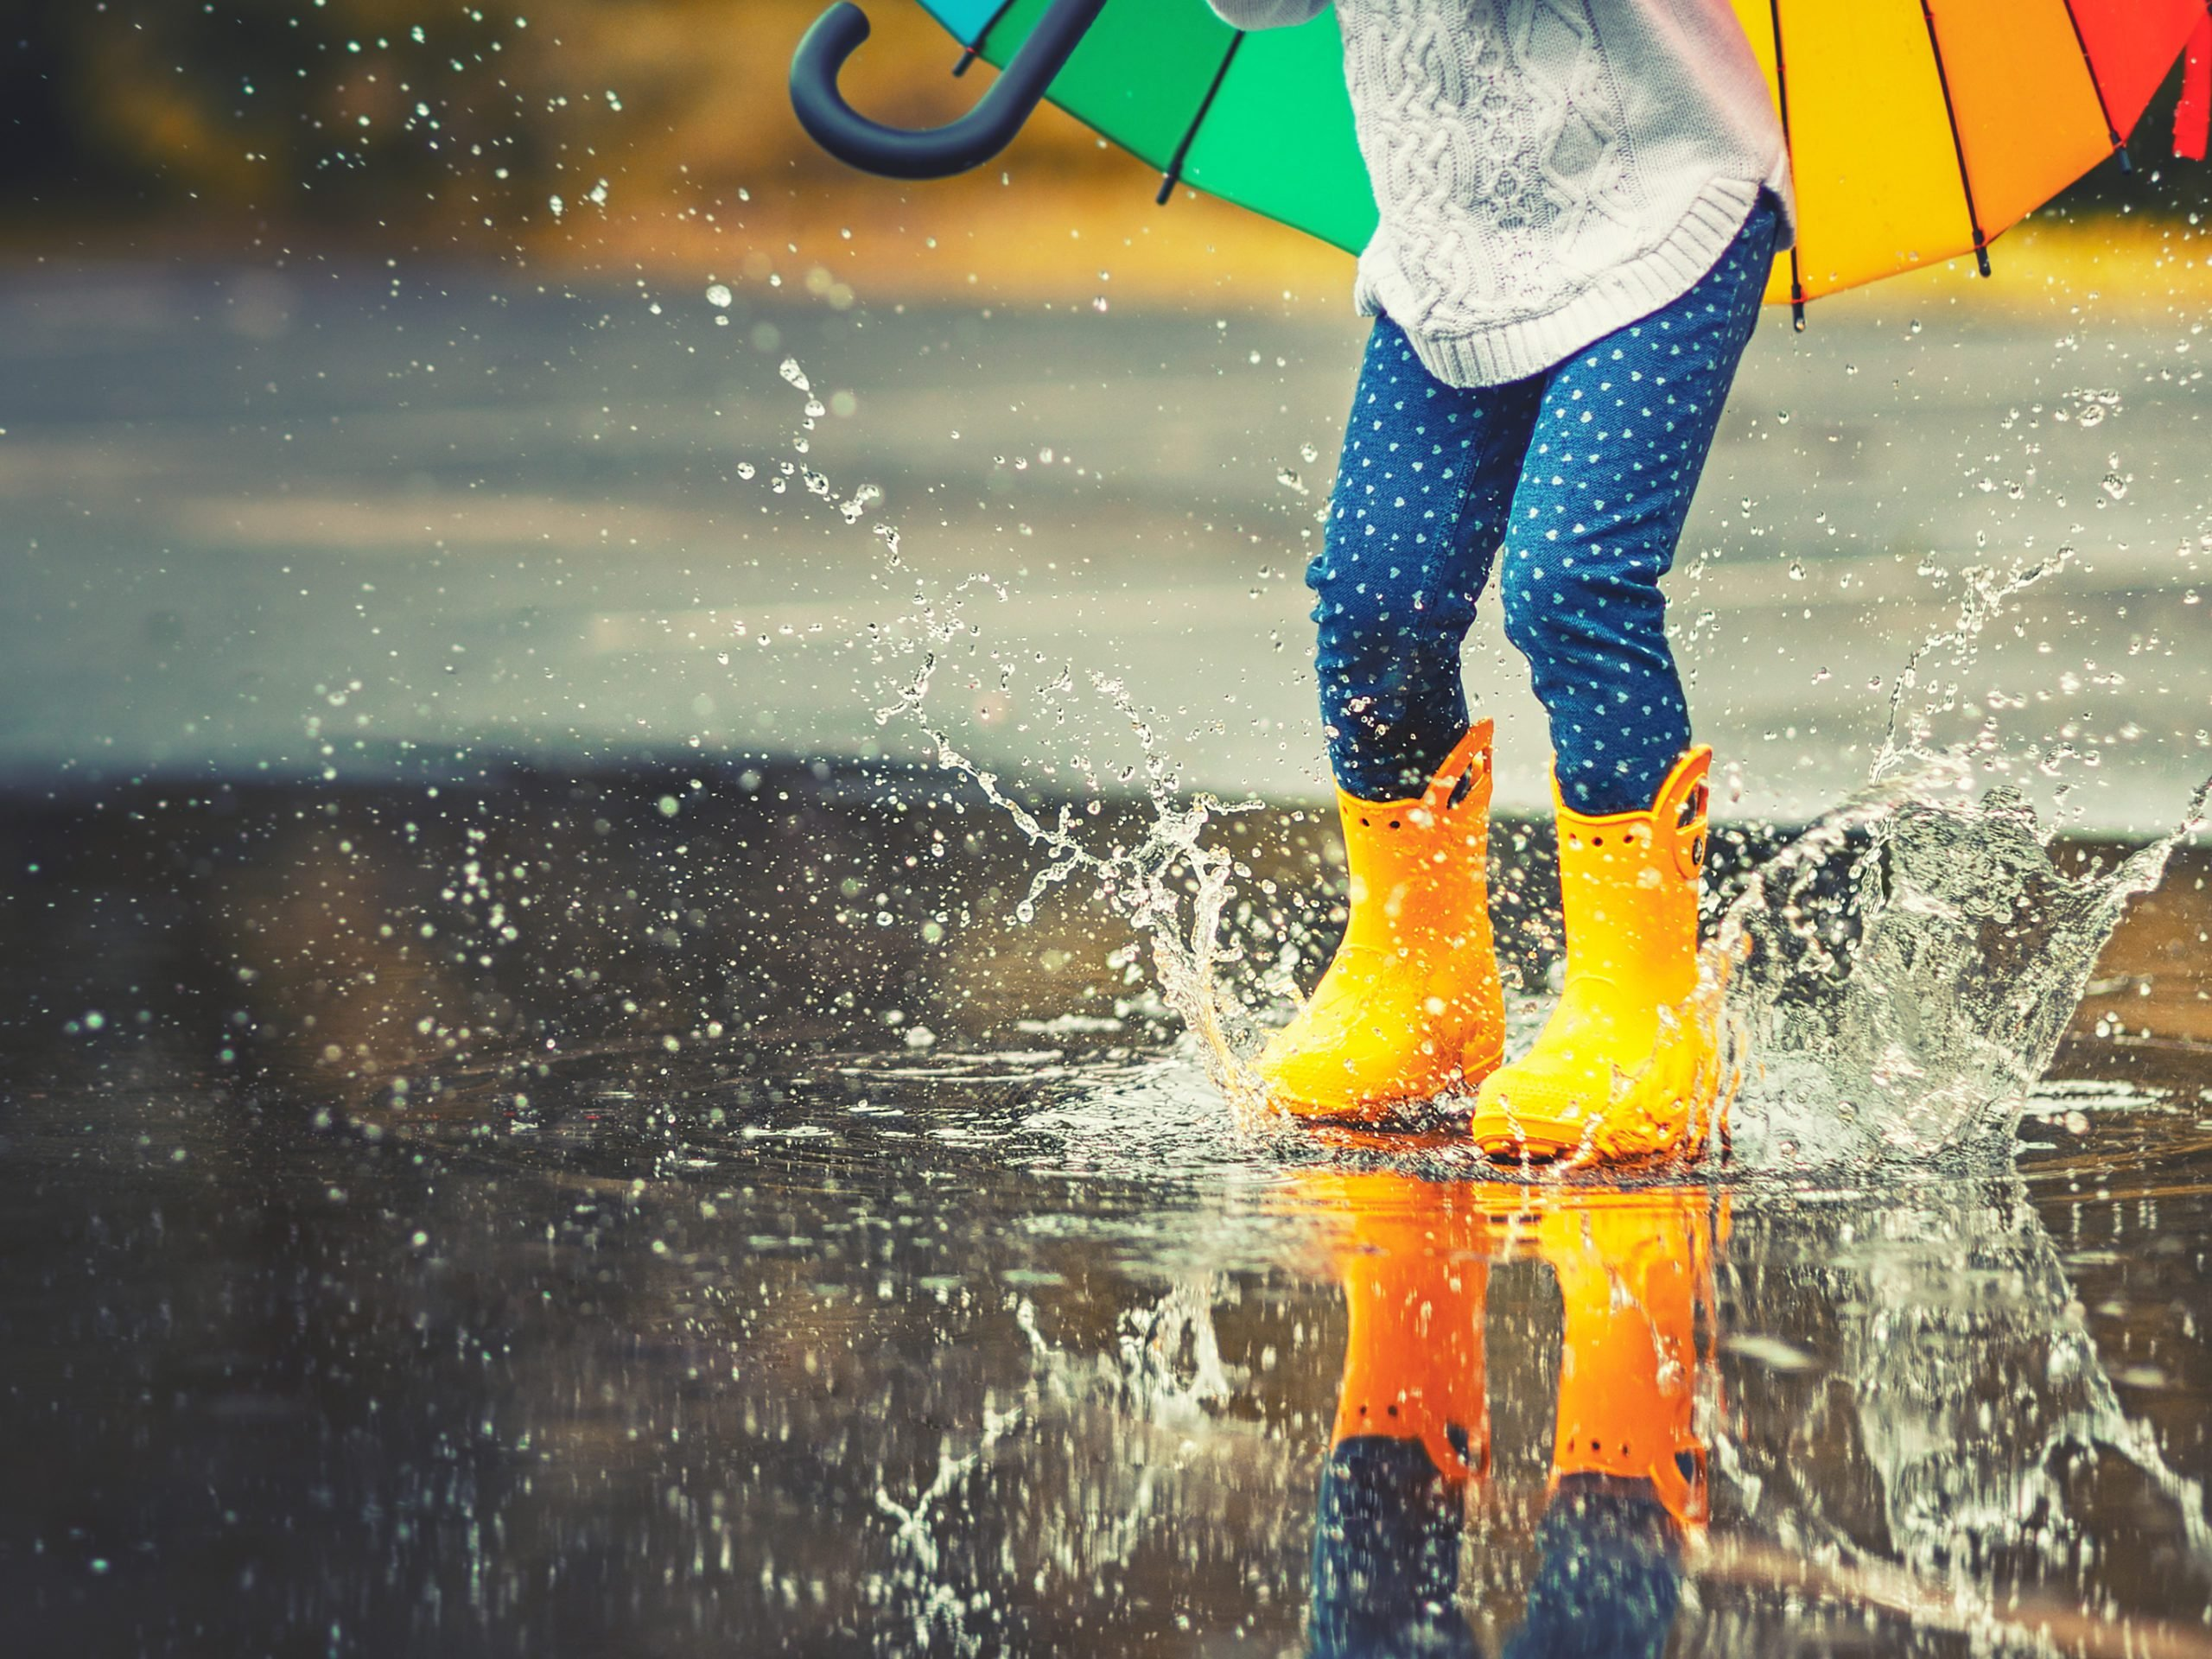 Fall 2020 Canada forecast - child splashing in puddle with umbrella